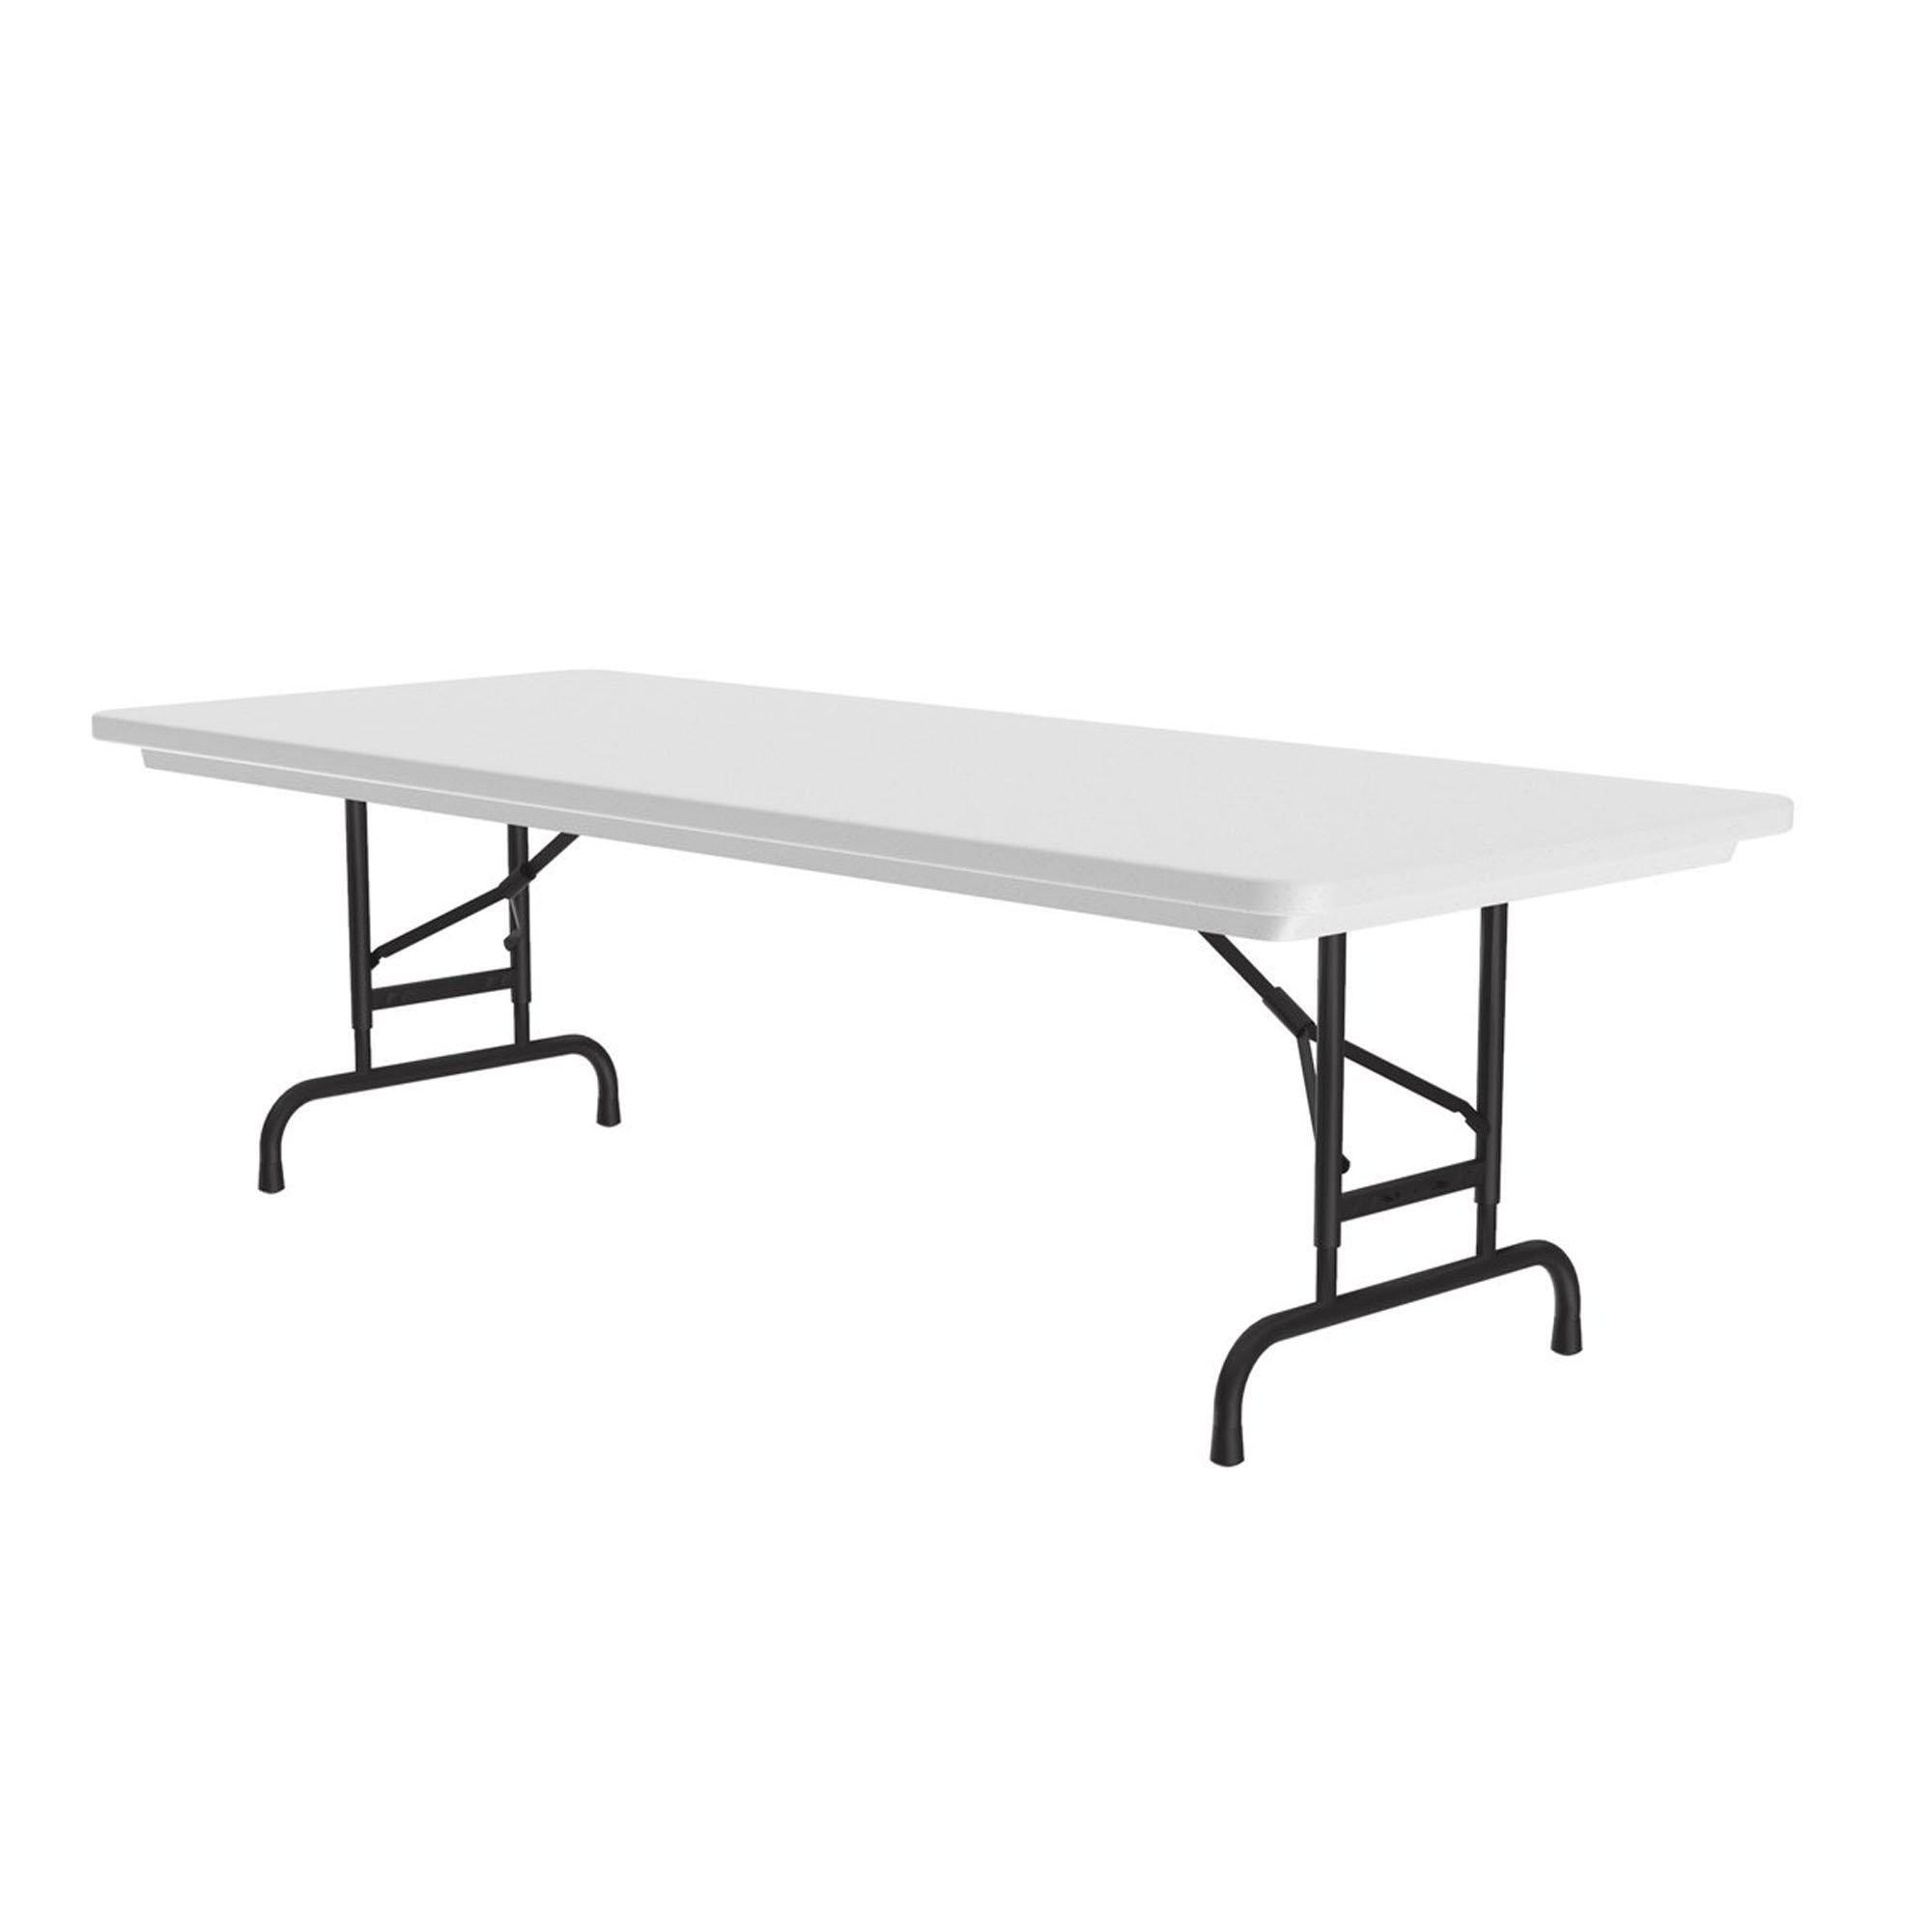 "Sanitation Station Antimicrobial Plastic Folding Table, 22""-32"" Adjustable Height"